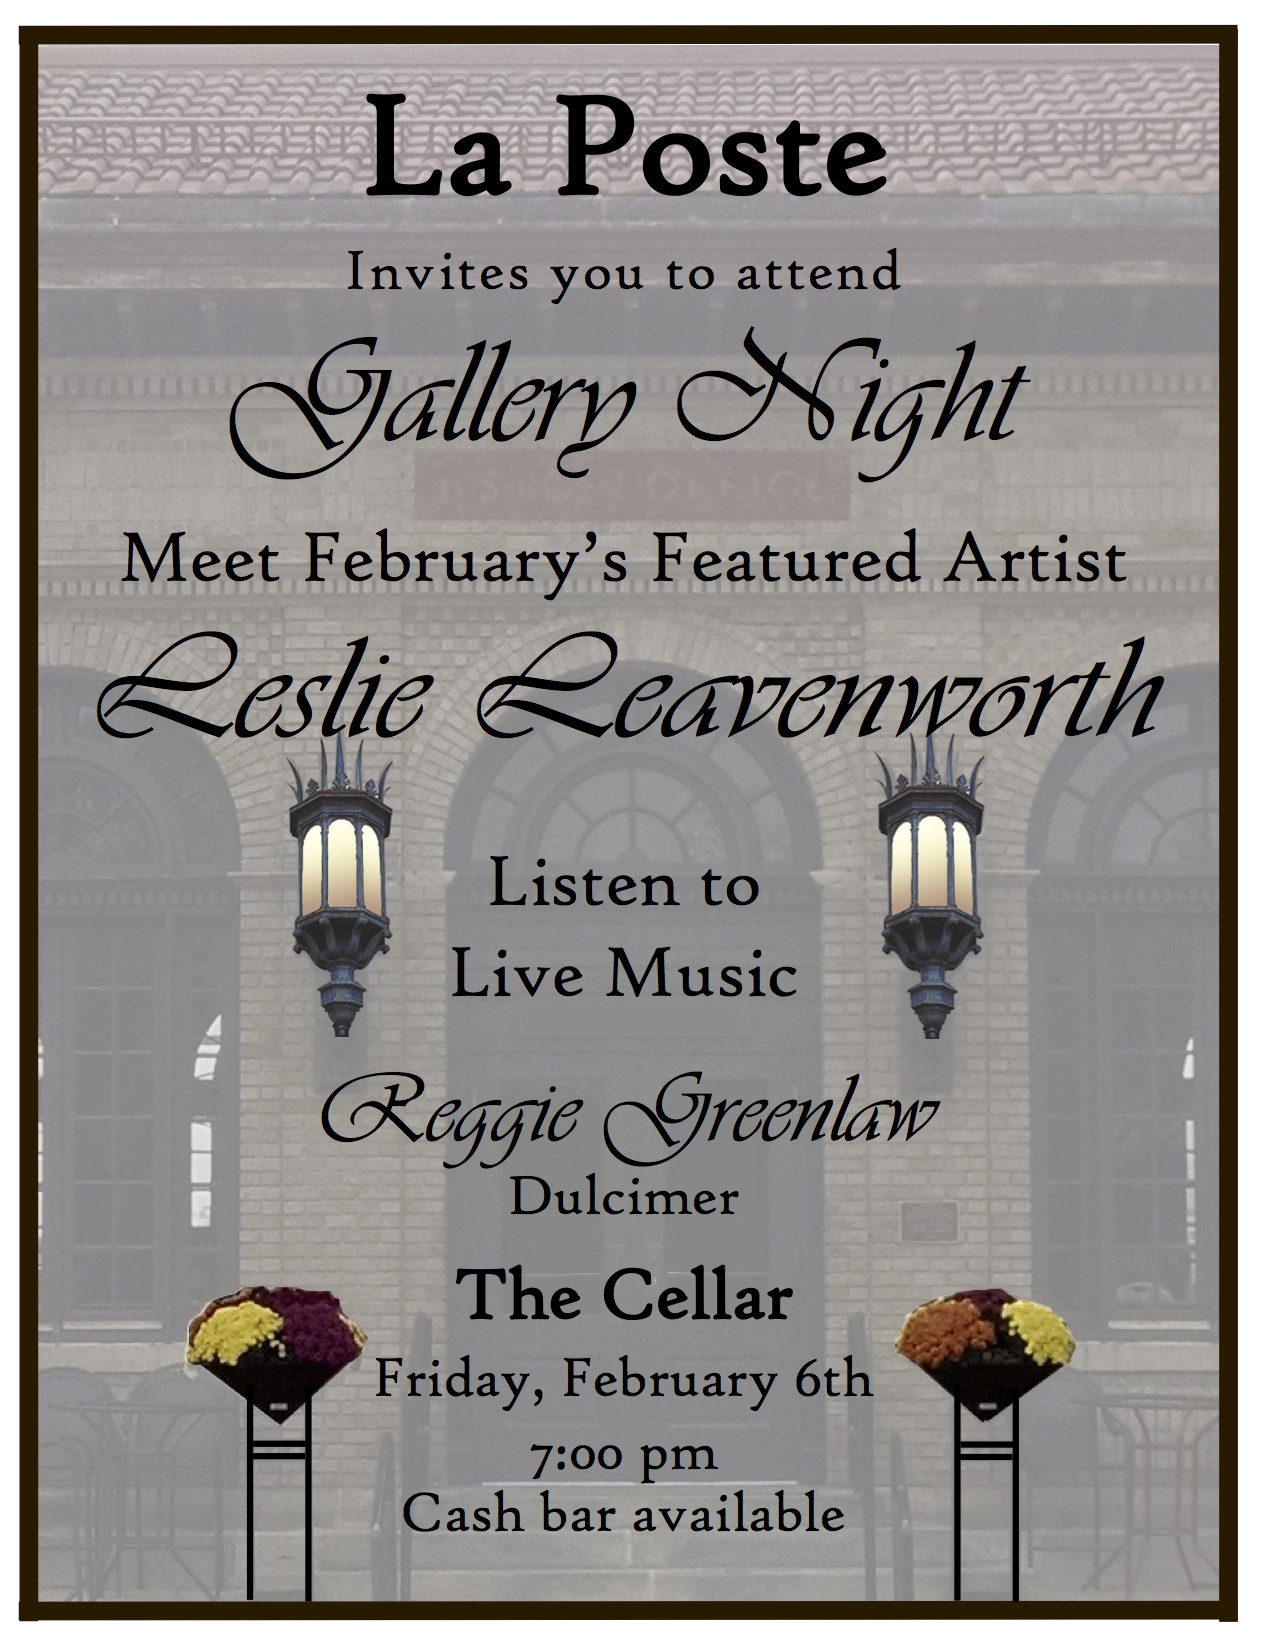 Join us this Friday, Feb. 6th, at 7:00in the Cellar of La Poste forGallery Nightwith artist Leslie Leavenworthand dulcimer music of Reggie Greenlaw.